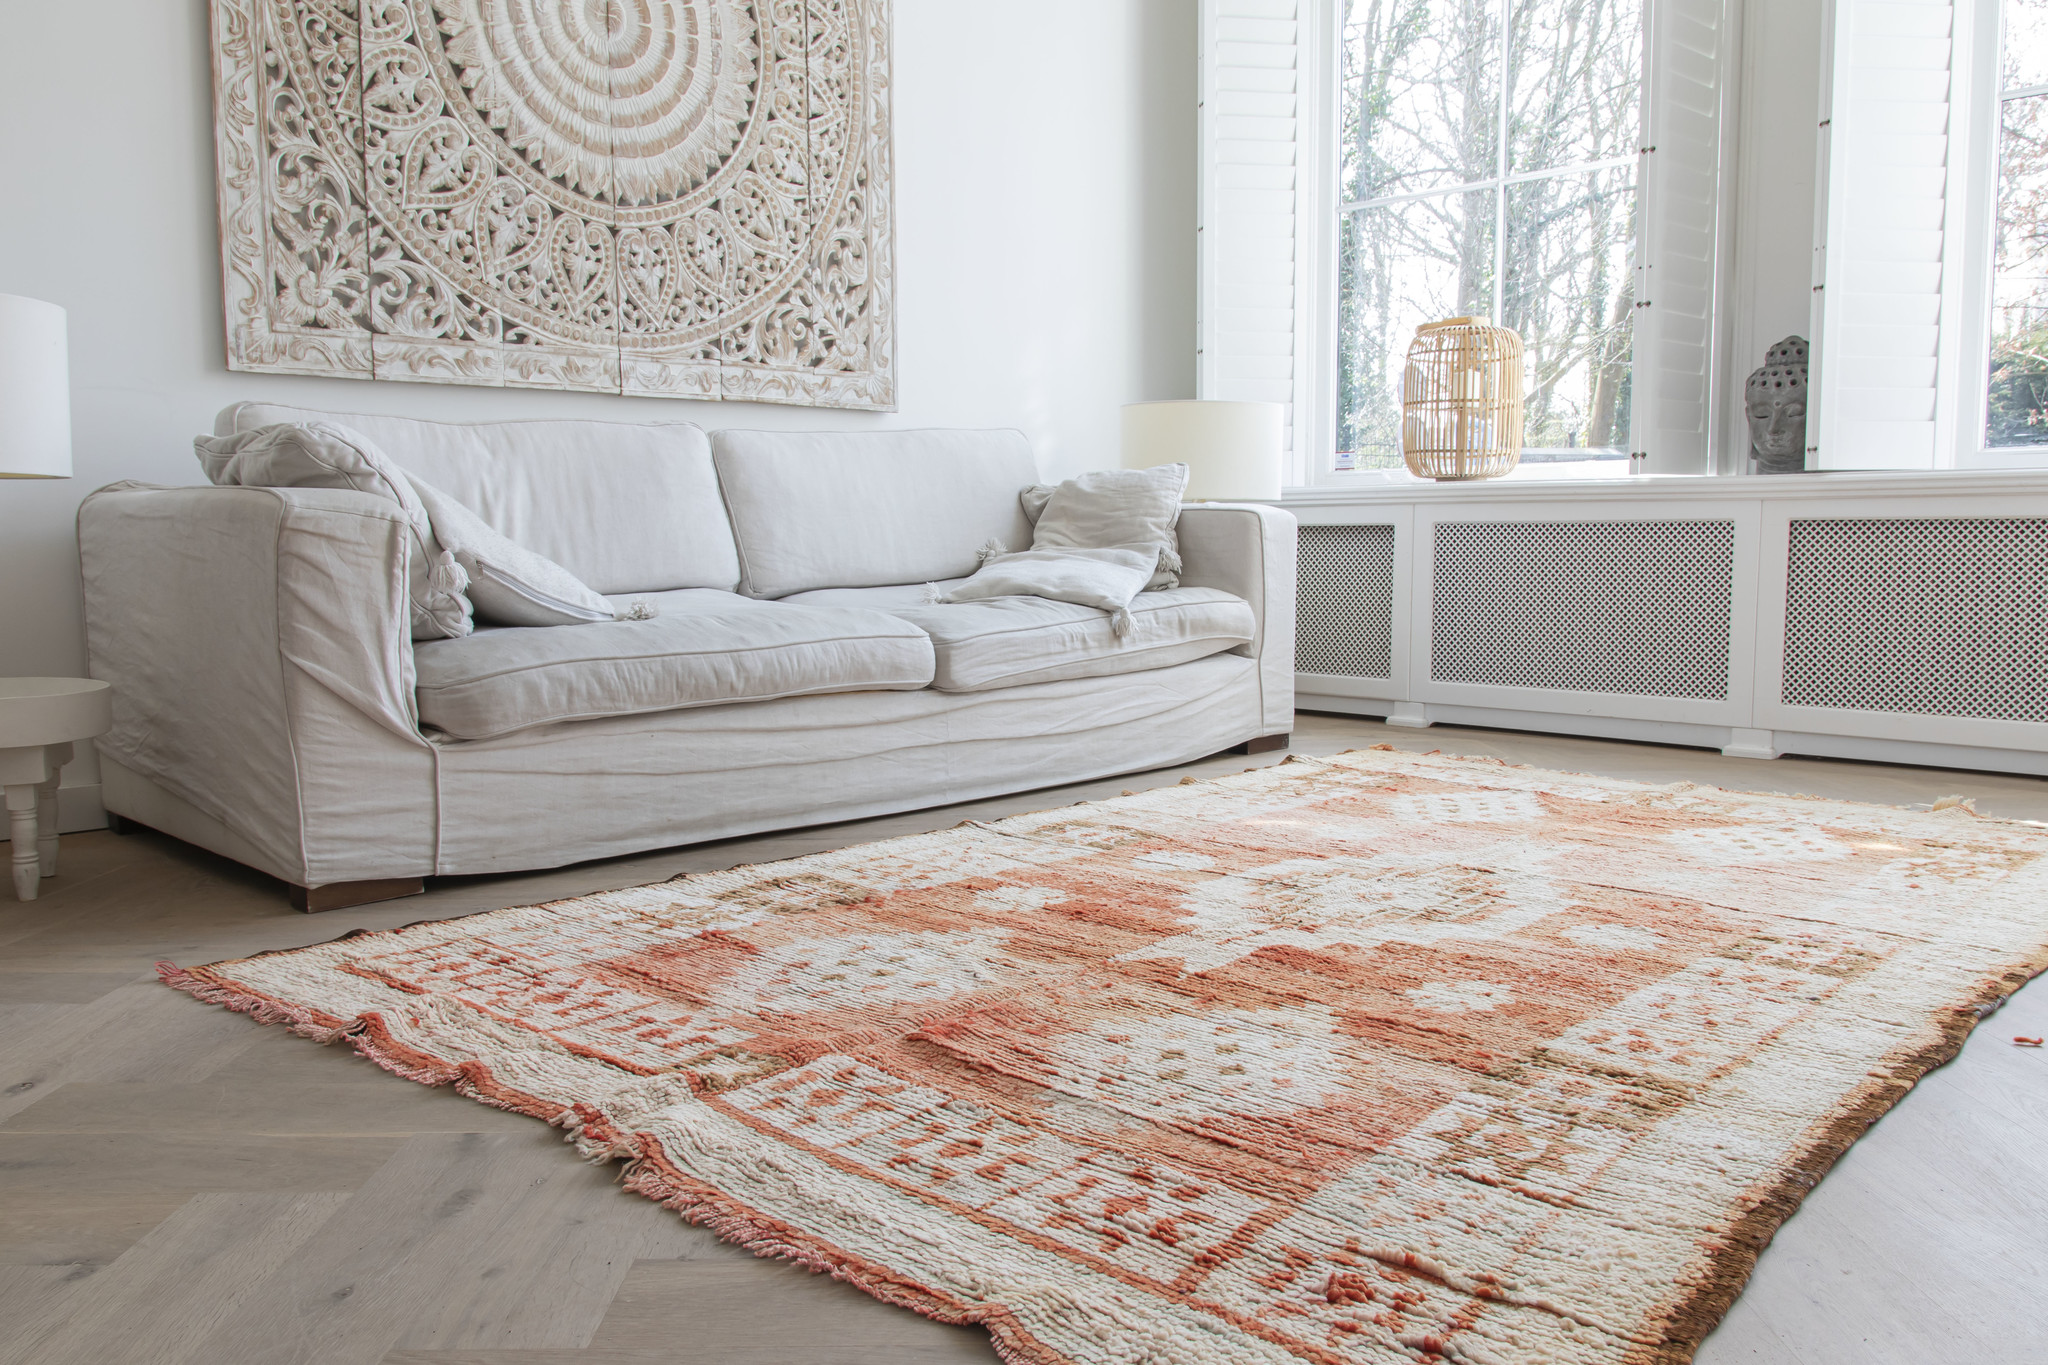 Simply Pure Handknotted Vintage Boujaad berber rug from Morocco 193 x 285 cm